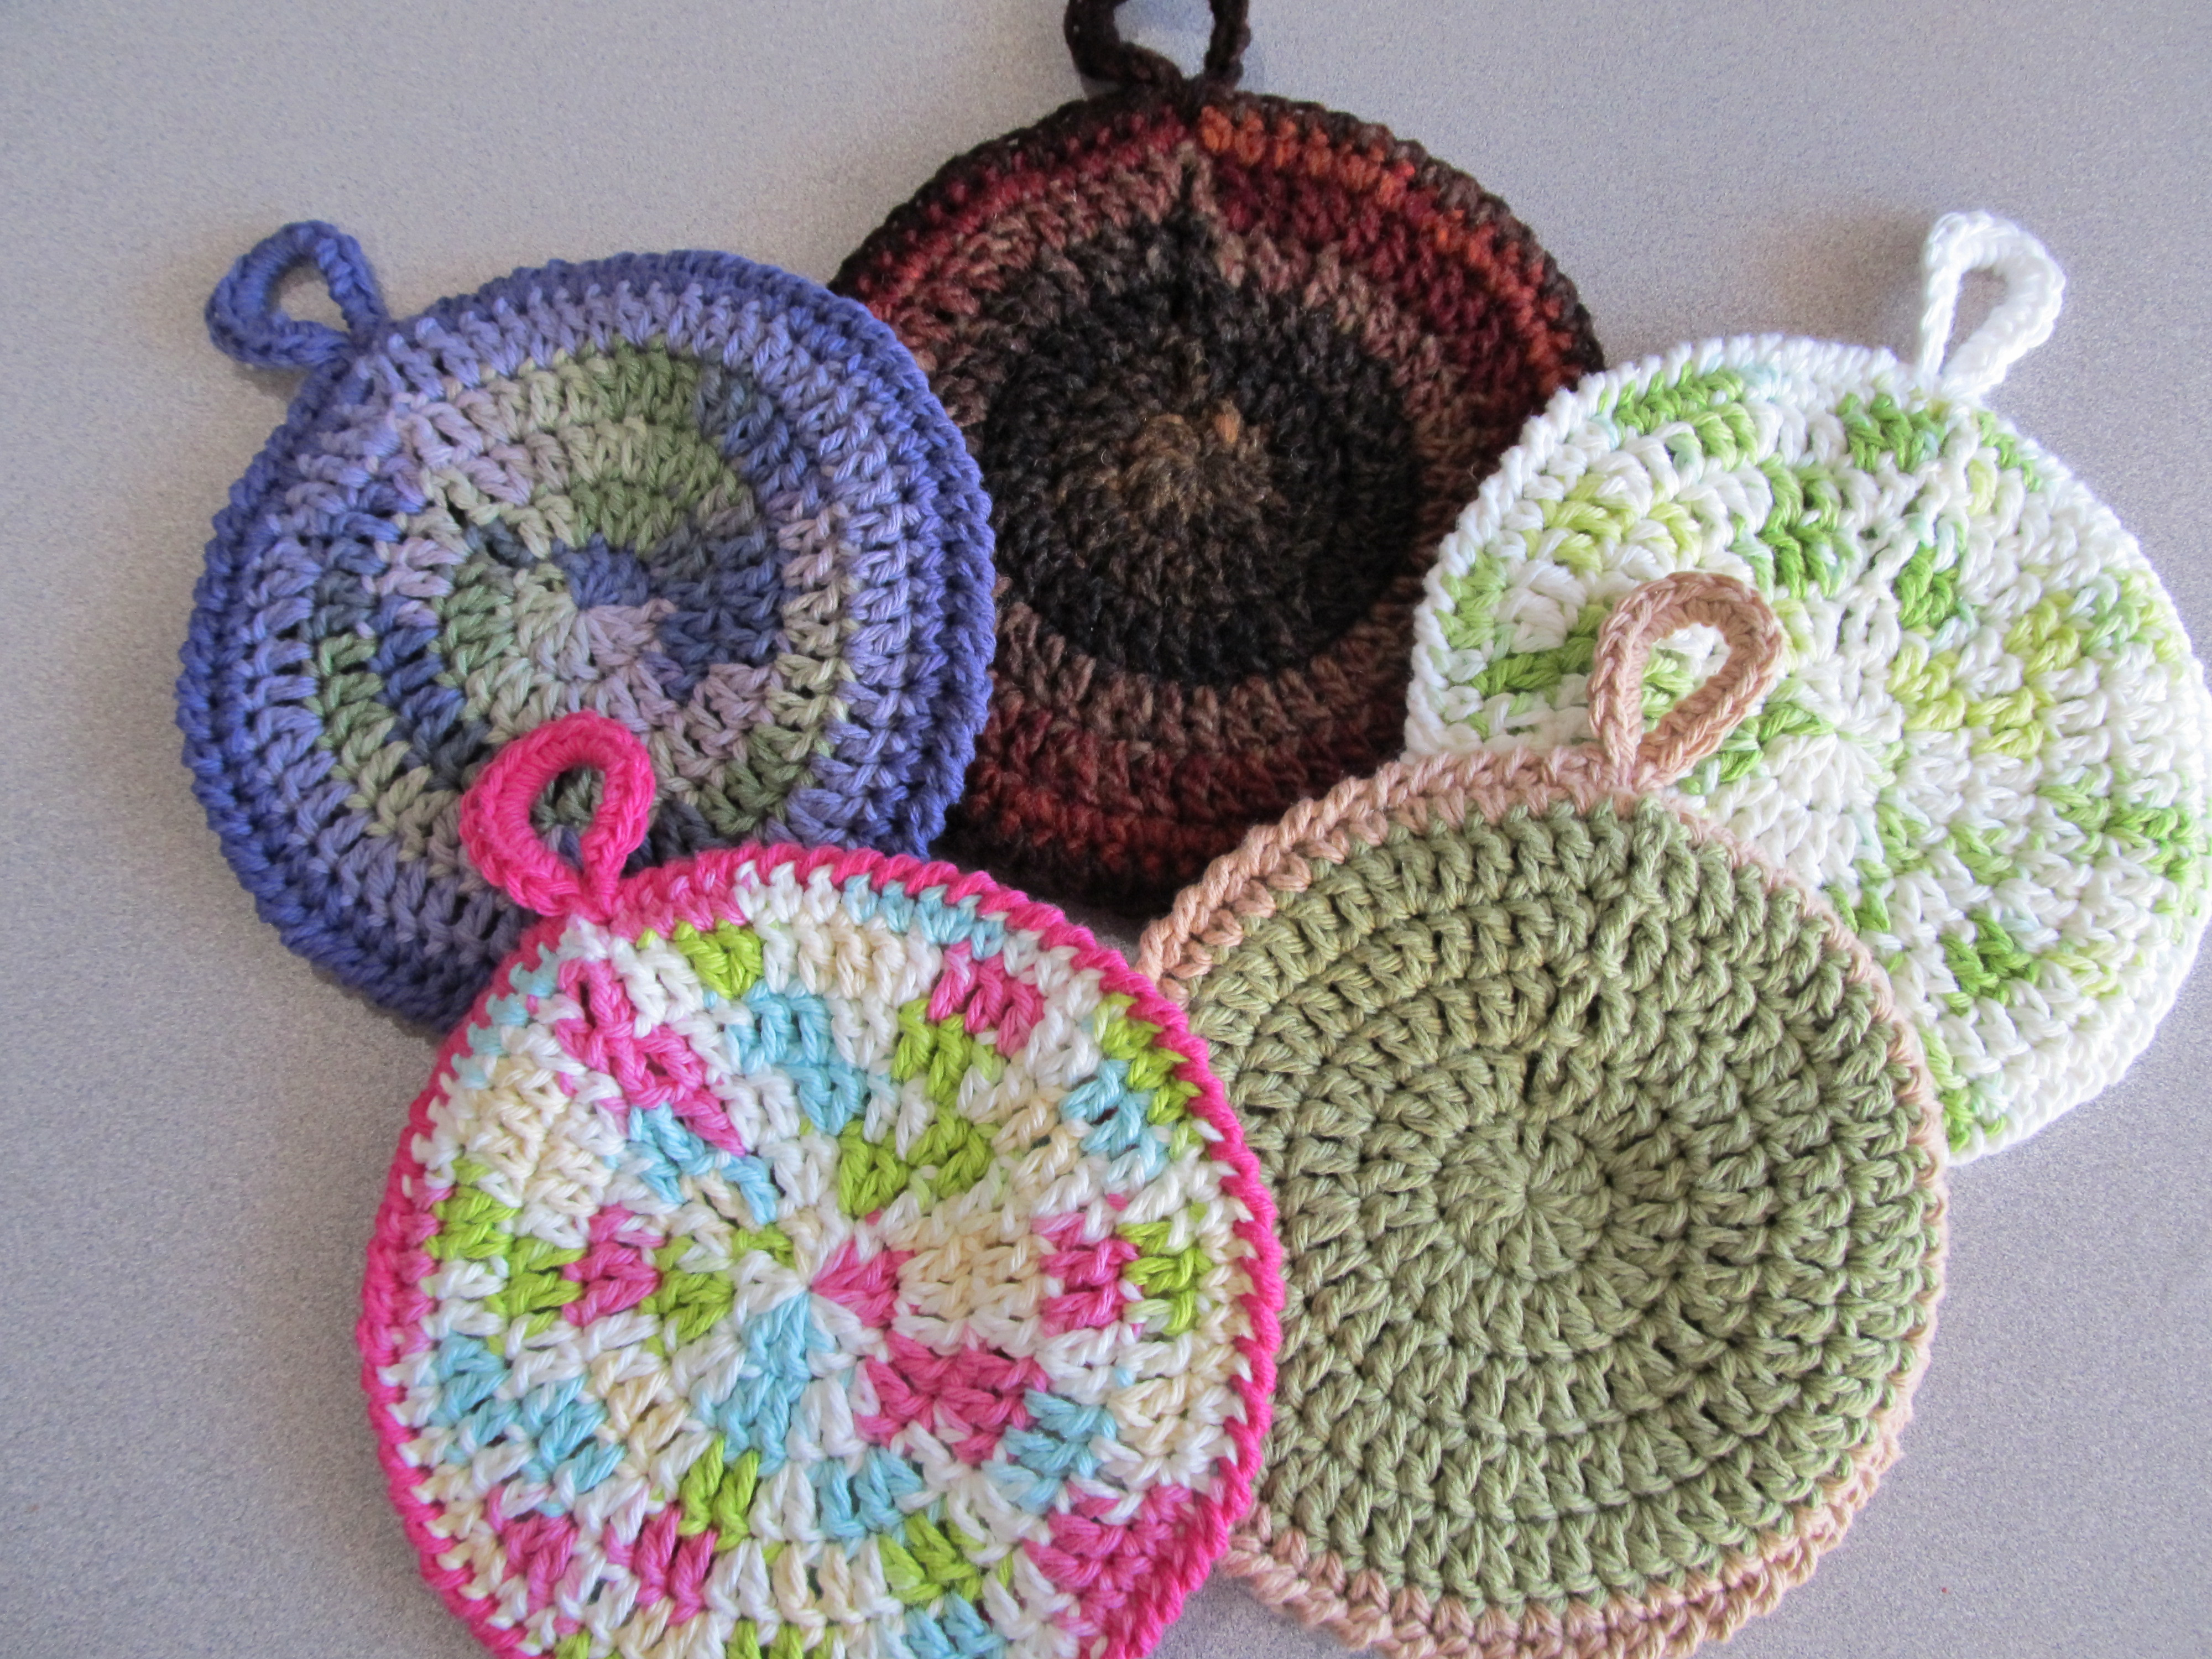 Crochet Potholder Pattern Awesome Circular Potholders Of Amazing 43 Pictures Crochet Potholder Pattern